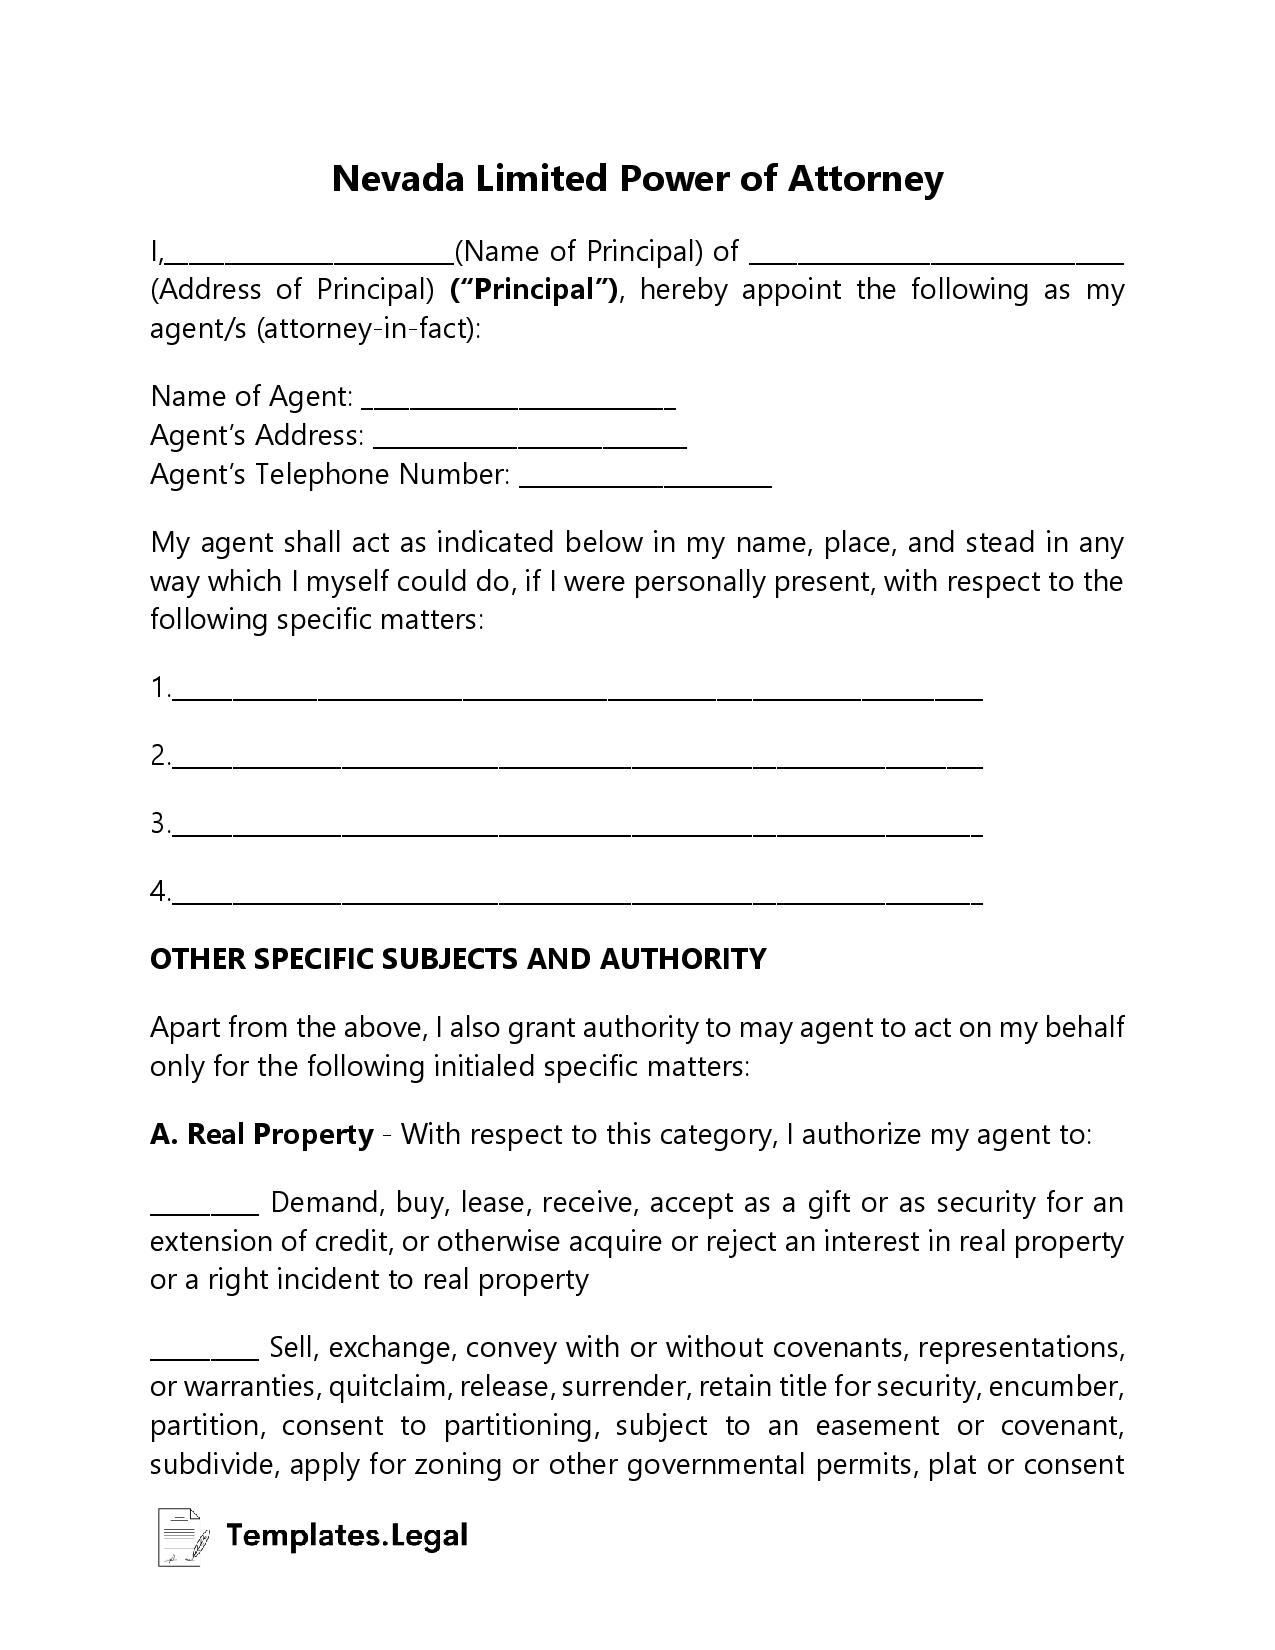 Nevada Limited Power of Attorney - Templates.Legal